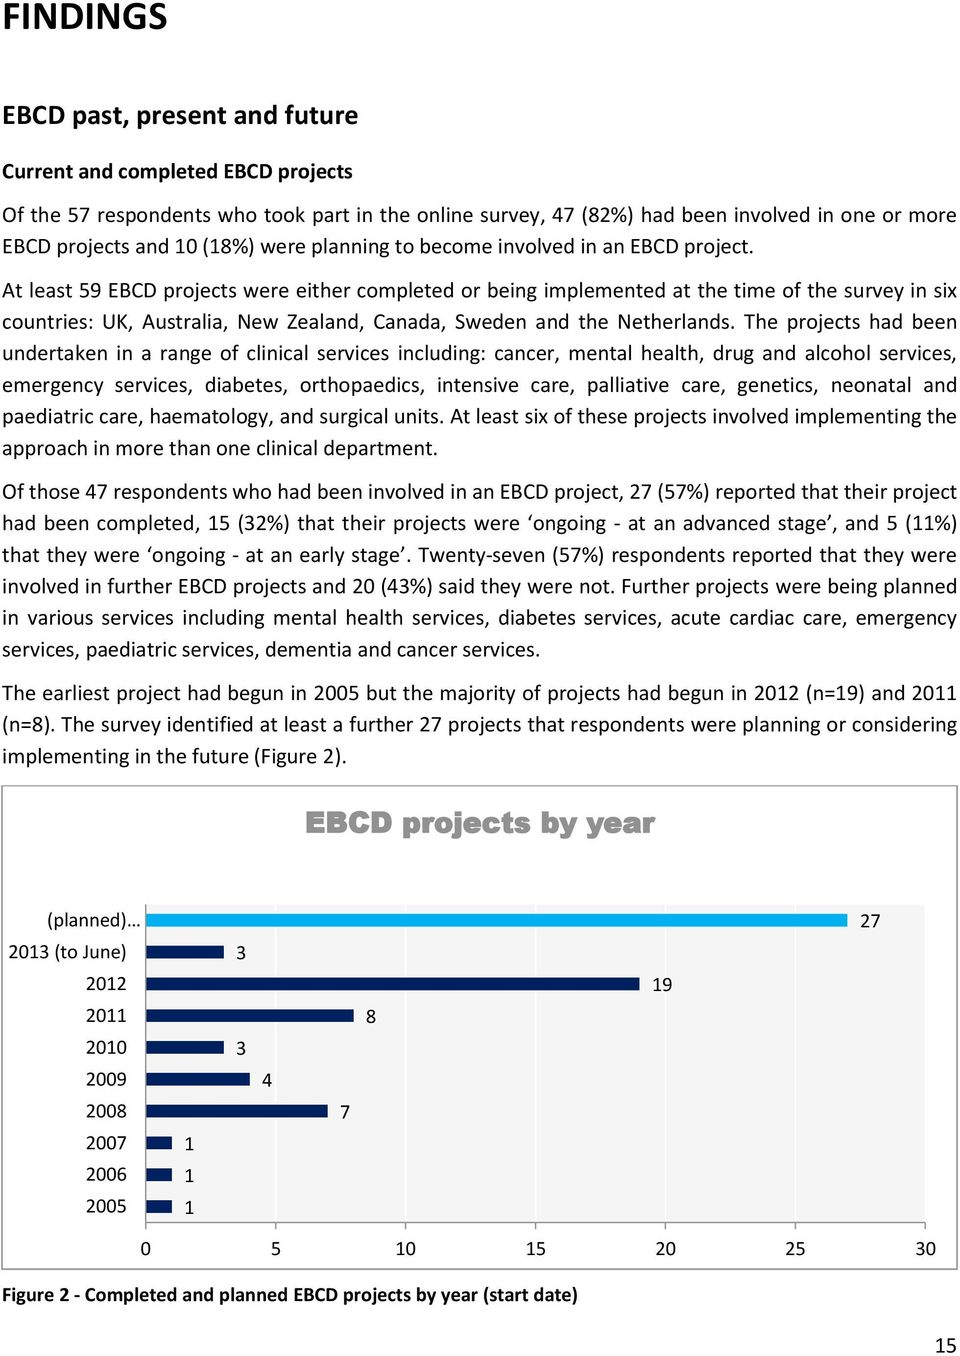 At least 59 EBCD projects were either completed or being implemented at the time of the survey in six countries: UK, Australia, New Zealand, Canada, Sweden and the Netherlands.